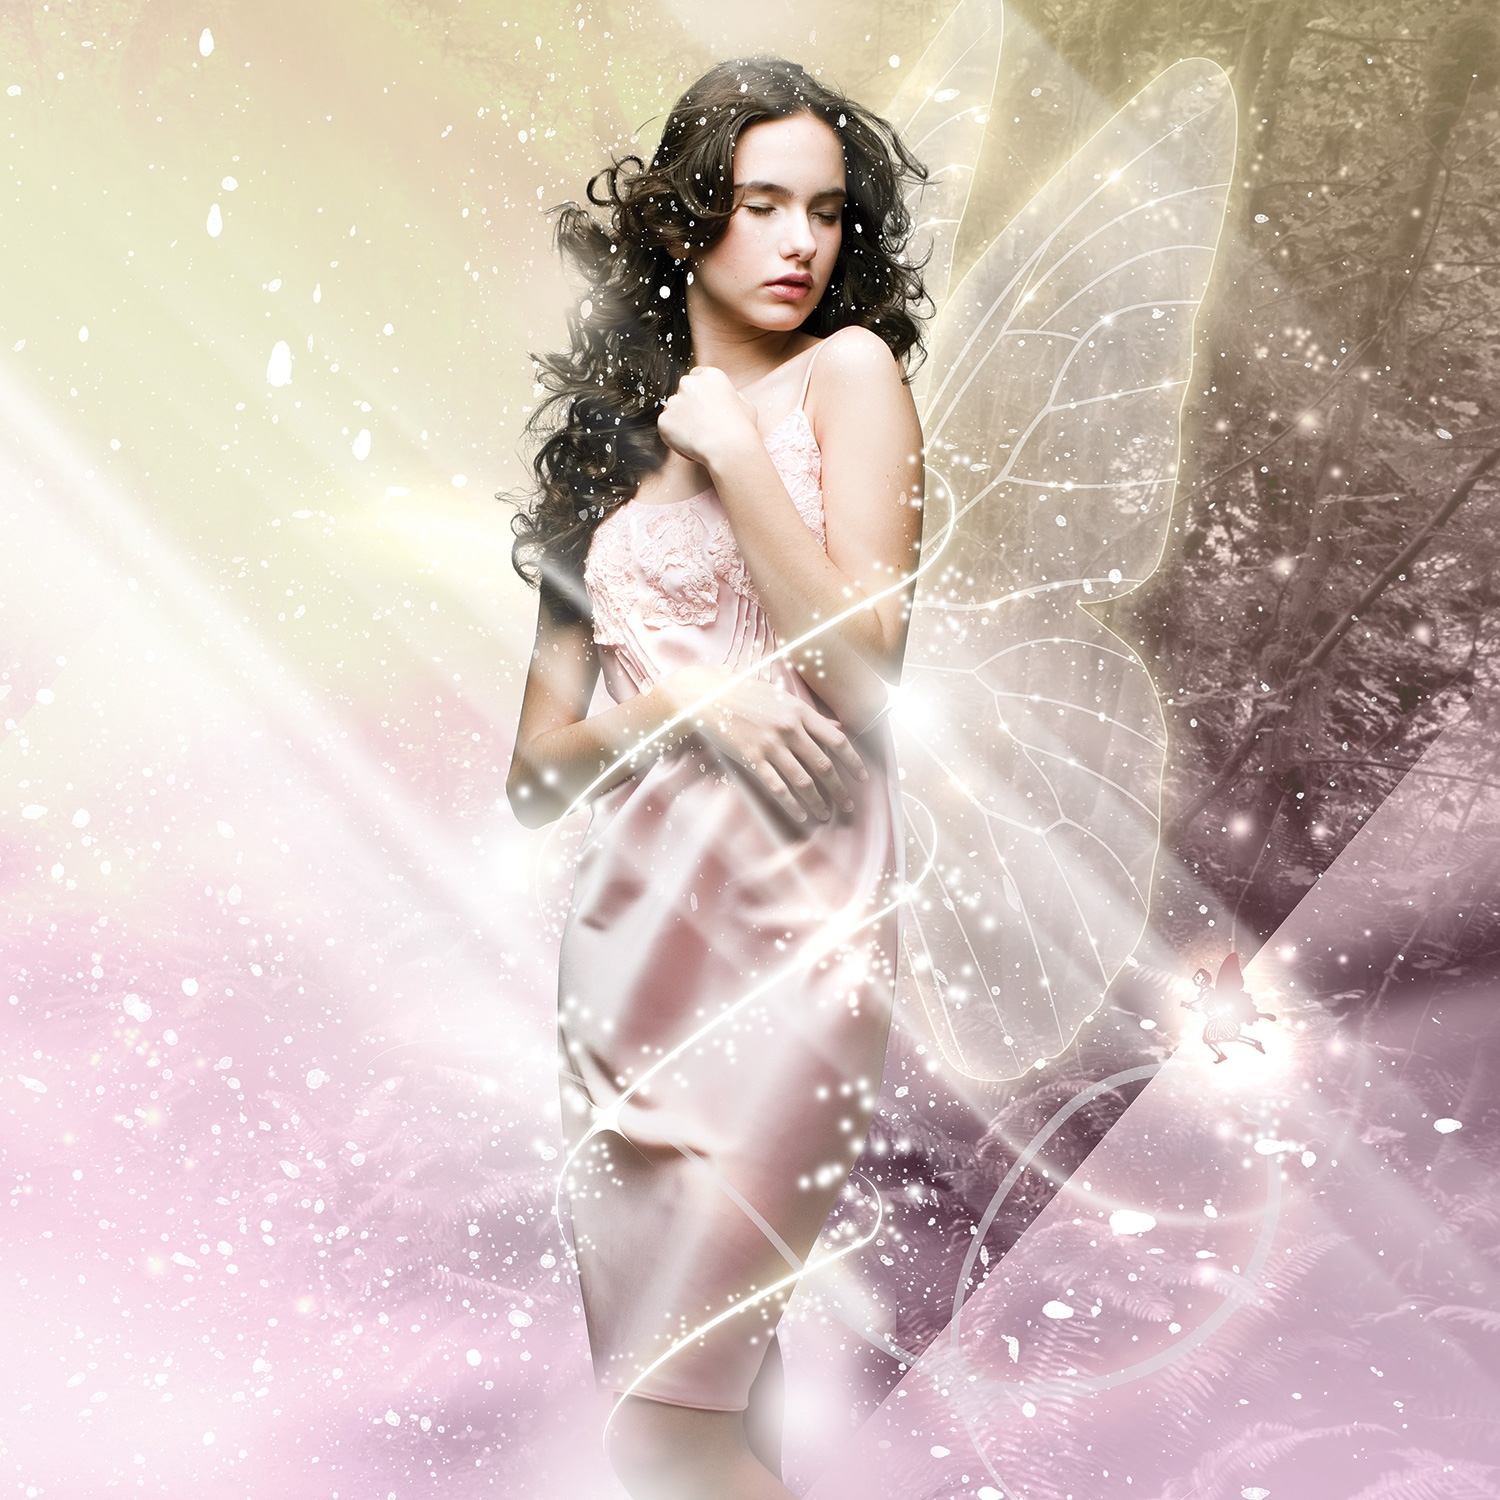 Photoshop tutorial add fantasy light effects to photo based download project files baditri Image collections